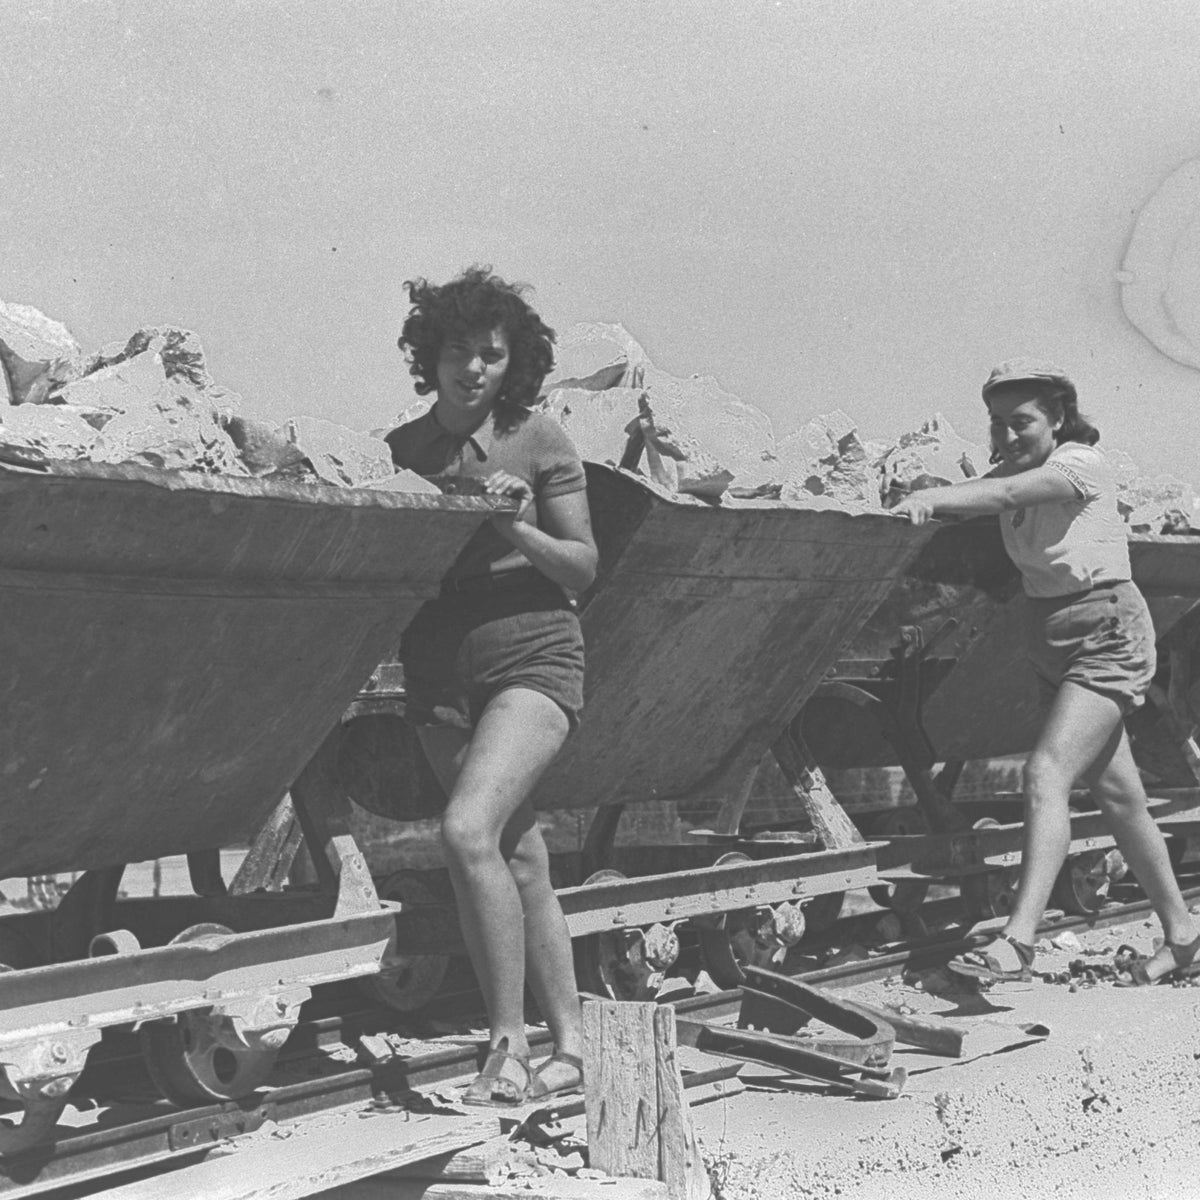 Kibbutz members working in the stone quarry of Kibbutz Ein Harod, 1941.